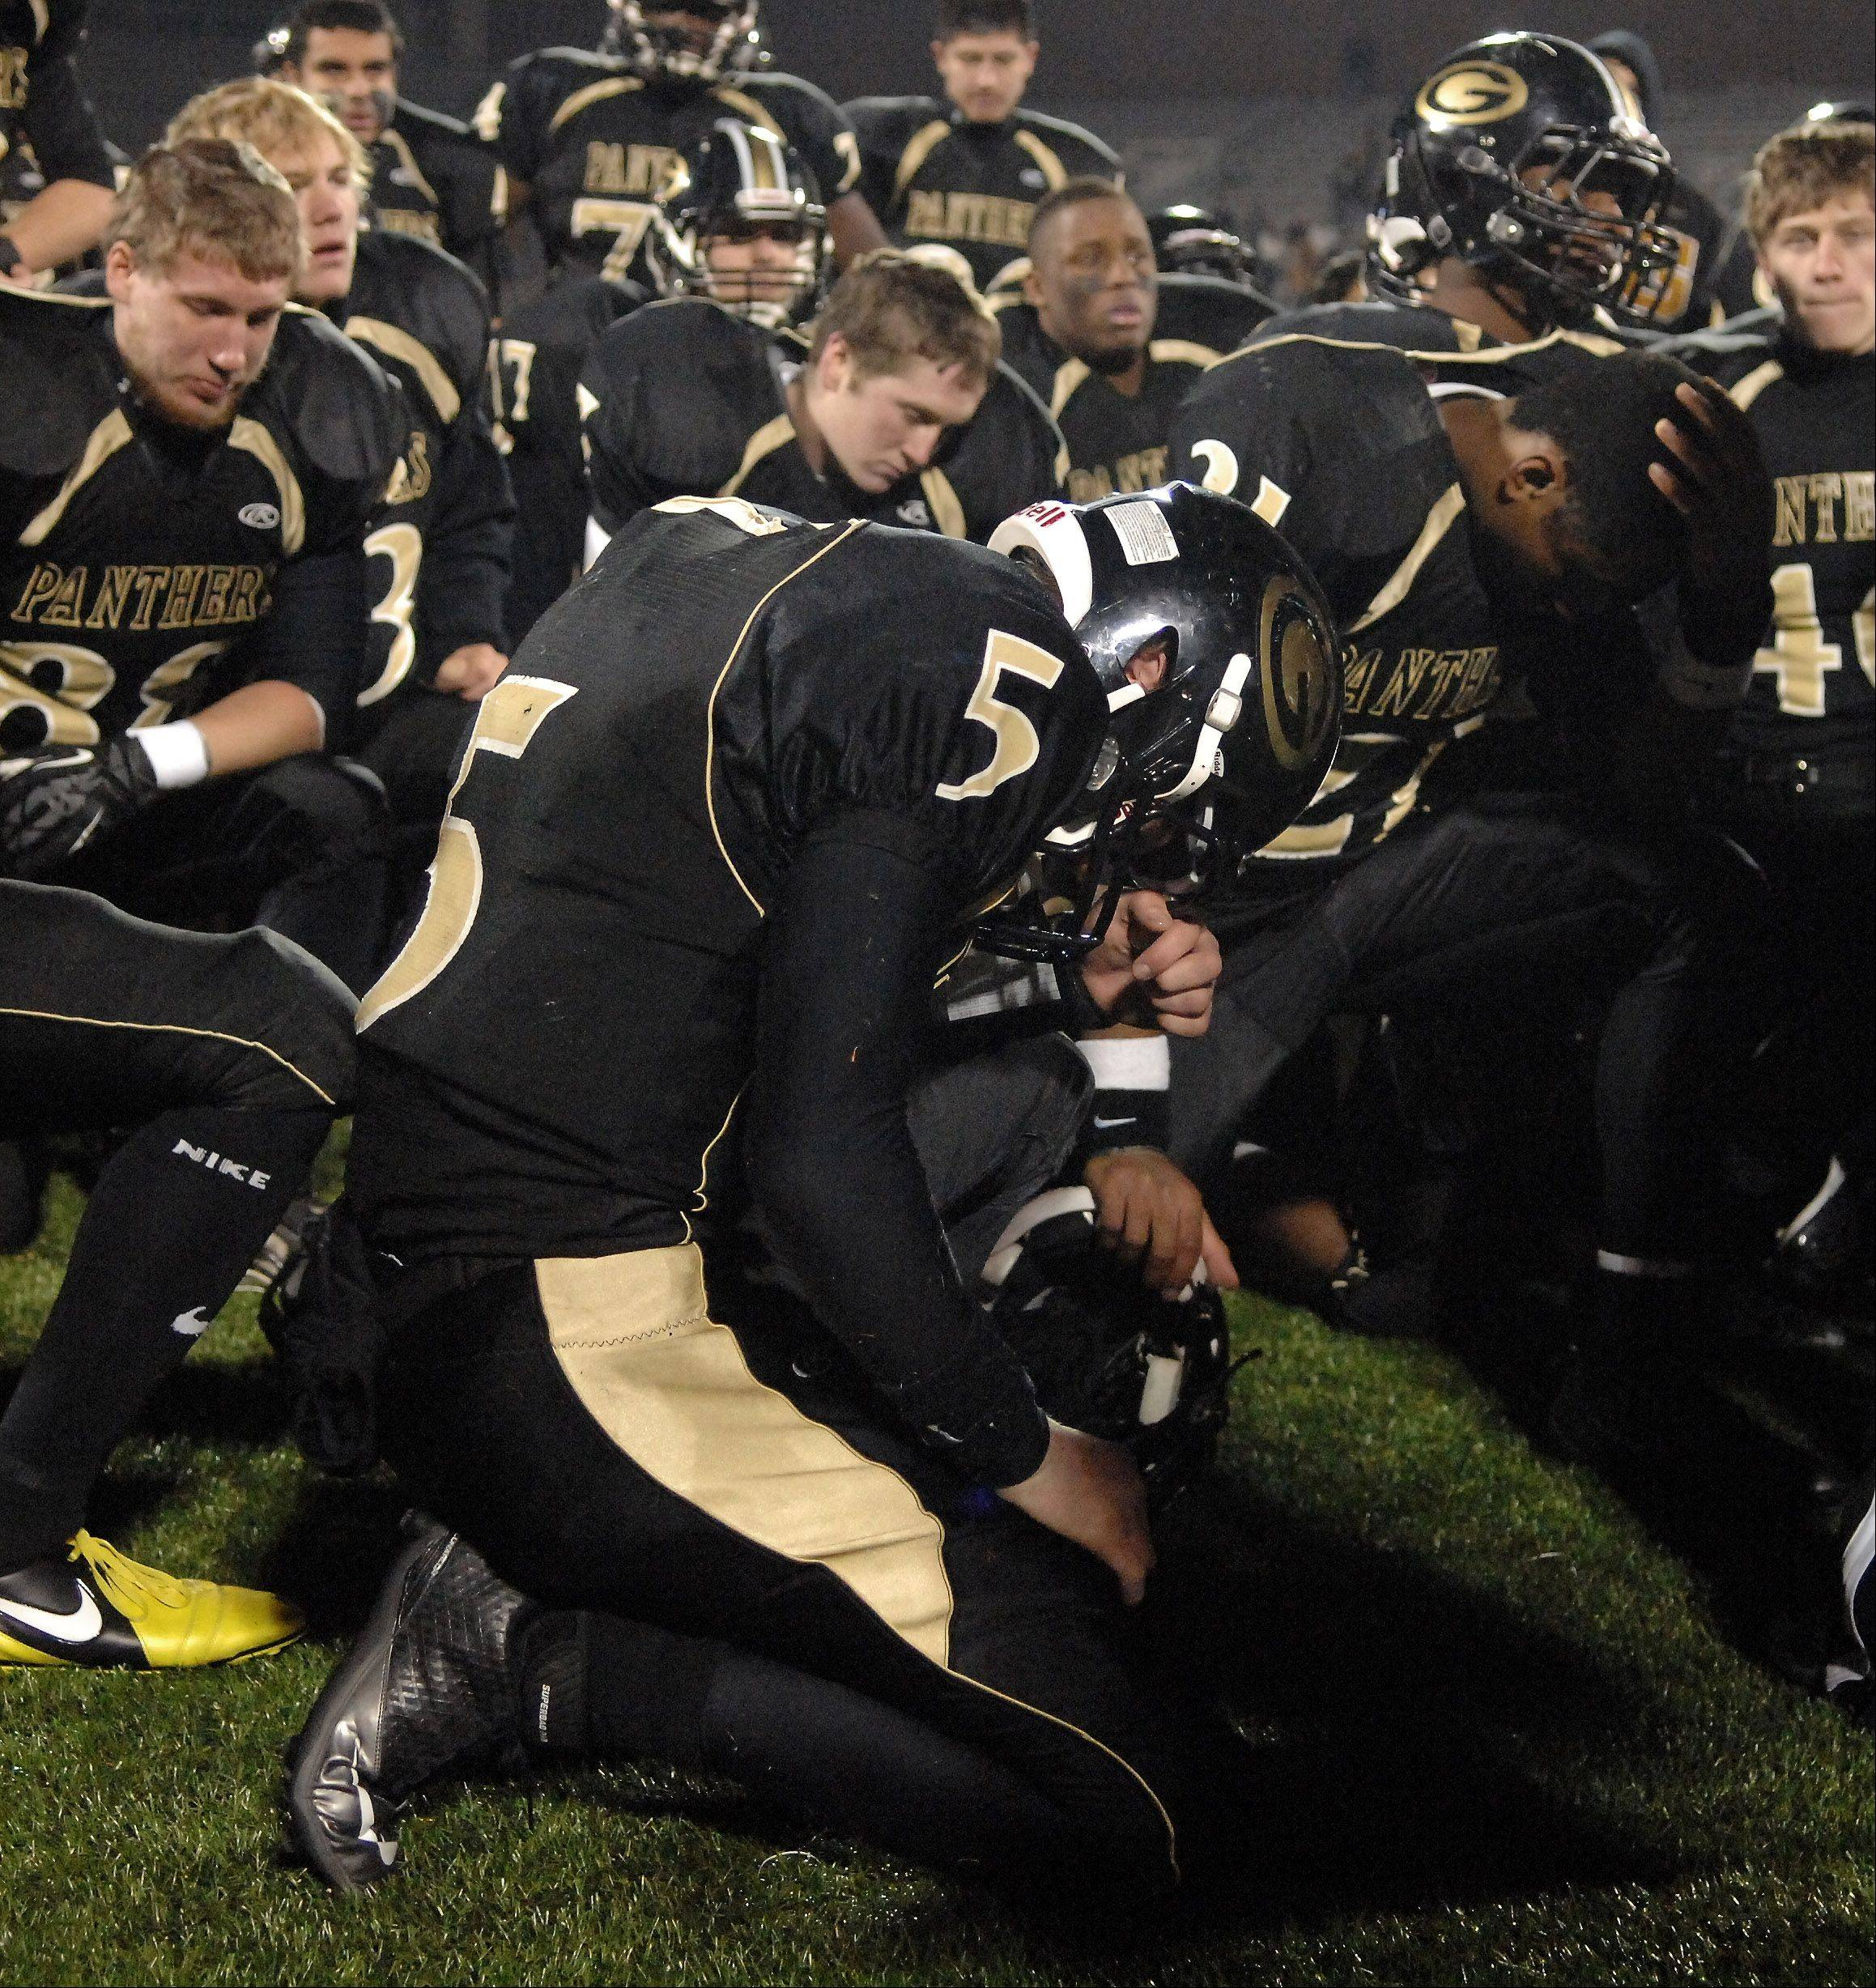 Glenbard North's Brian Murphy bows his head following the Panthers loss to Mt. Carmel during Saturday's Class 8A state title game at Memorial Stadium in Champaign.